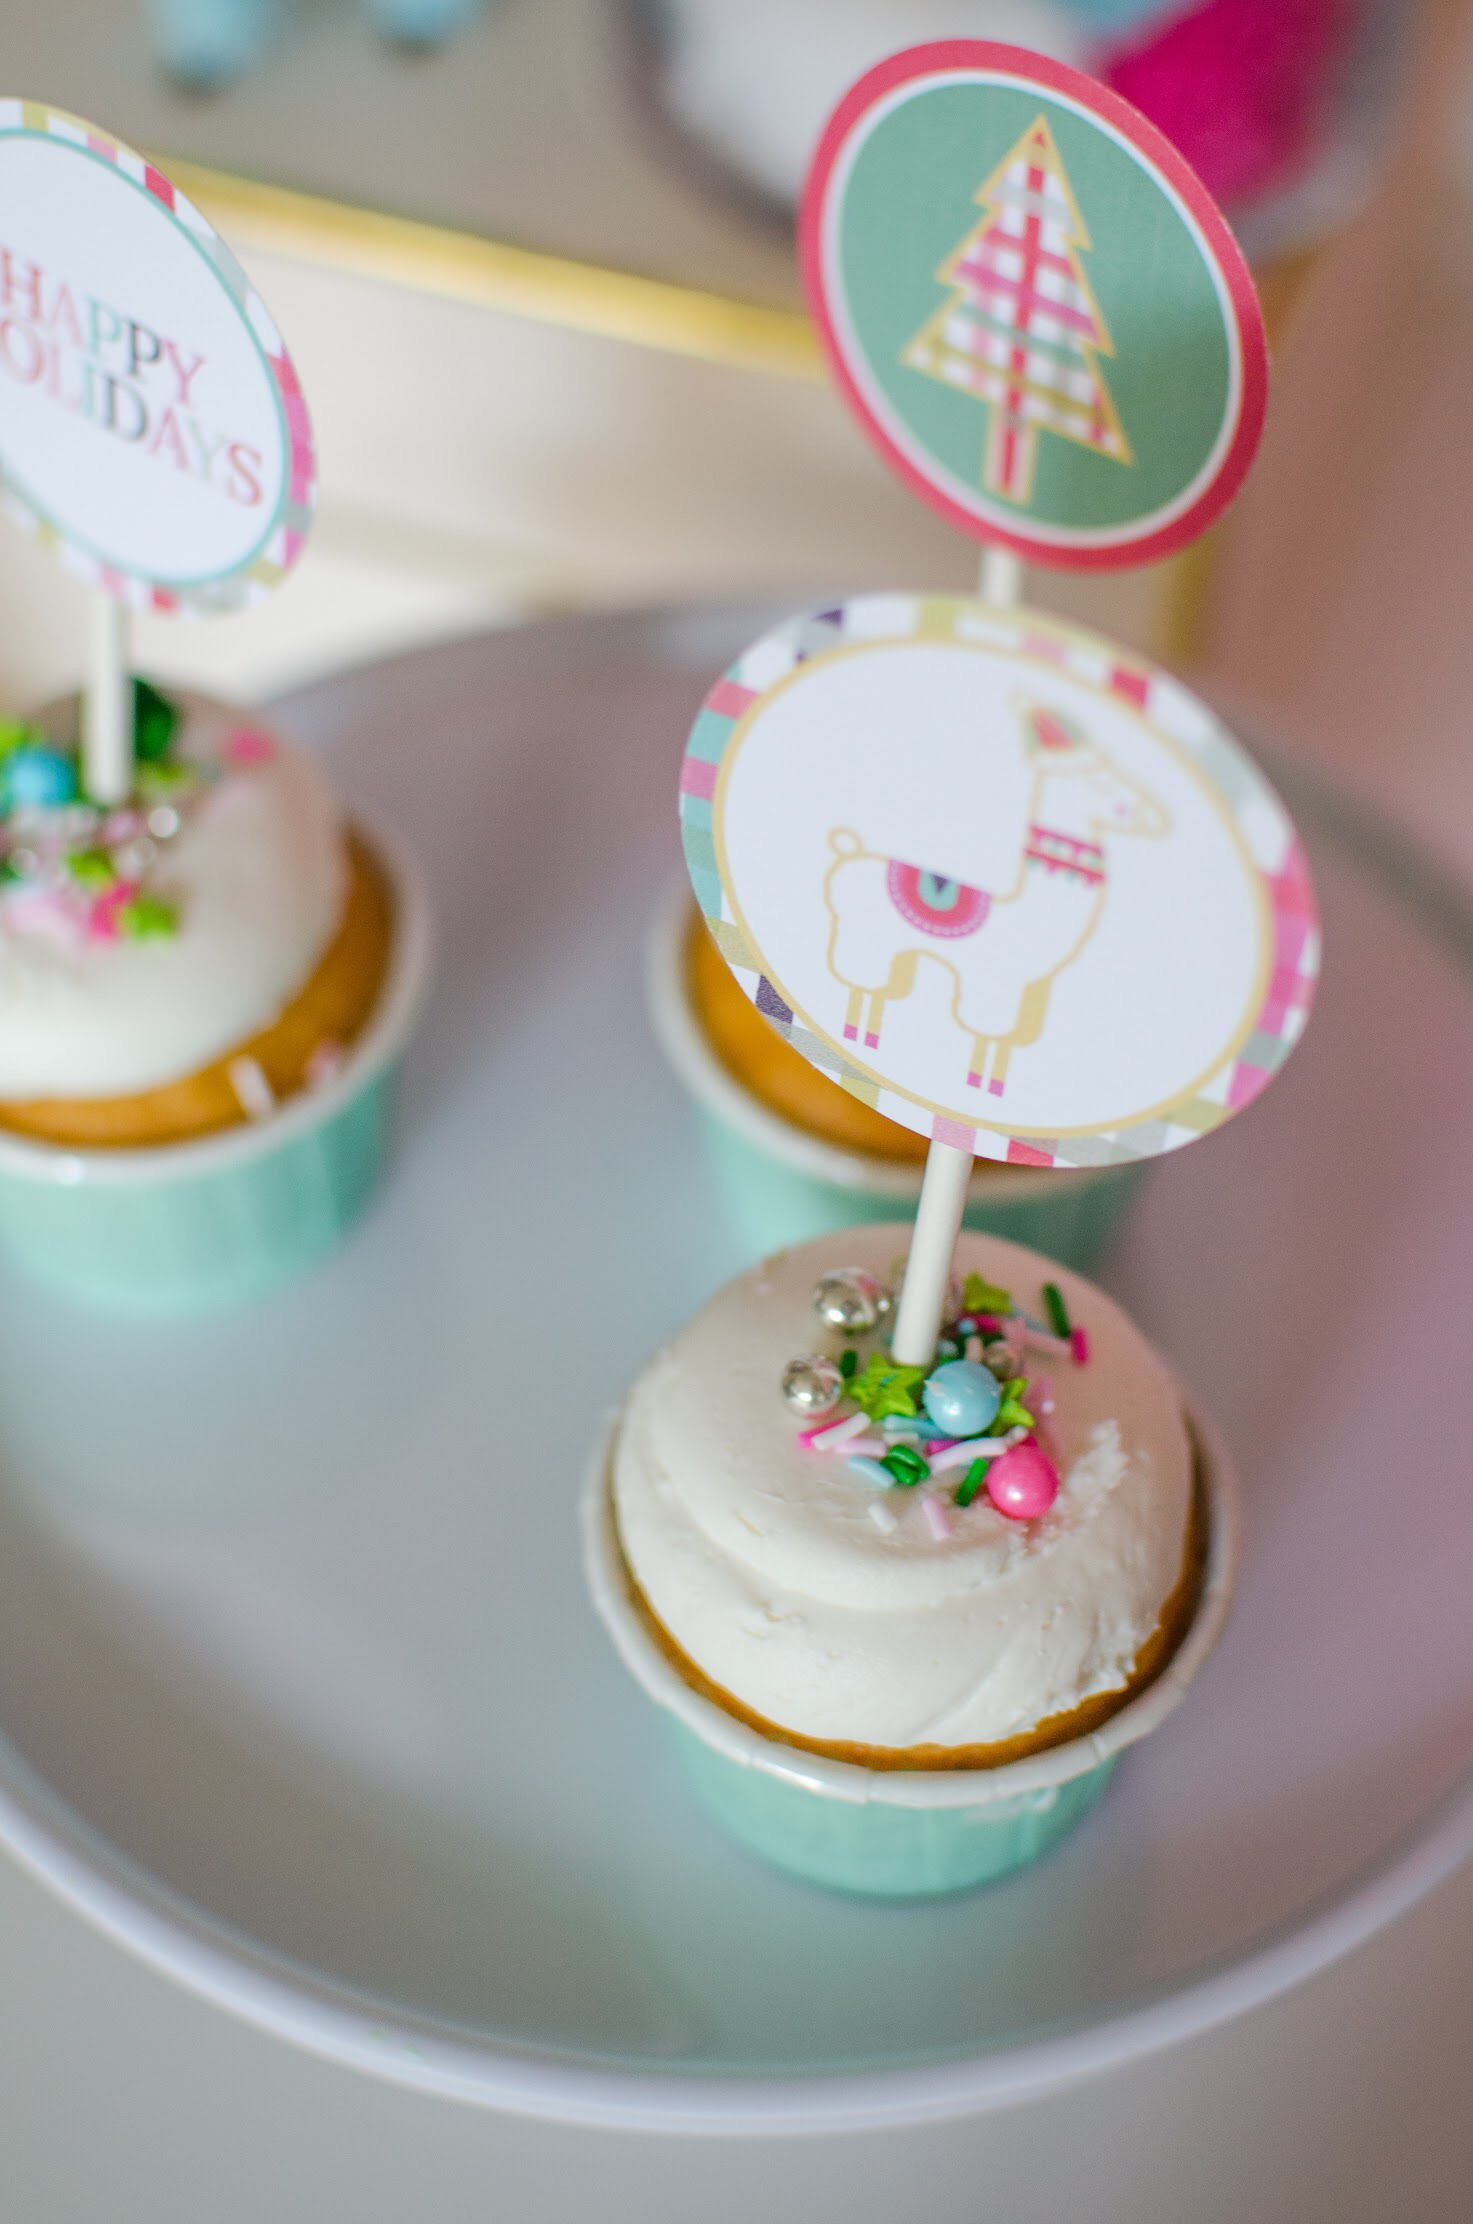 This cute fa la la la llama cupcake topper is a free download from Mint Event Design. See more from this llama Christmas party at www.minteventdesign.com and download your free printables #holidayparty #partyideas #christmasparty #holidaypartyideas #llamaparty #llamalove #partyprintables #freeprintables